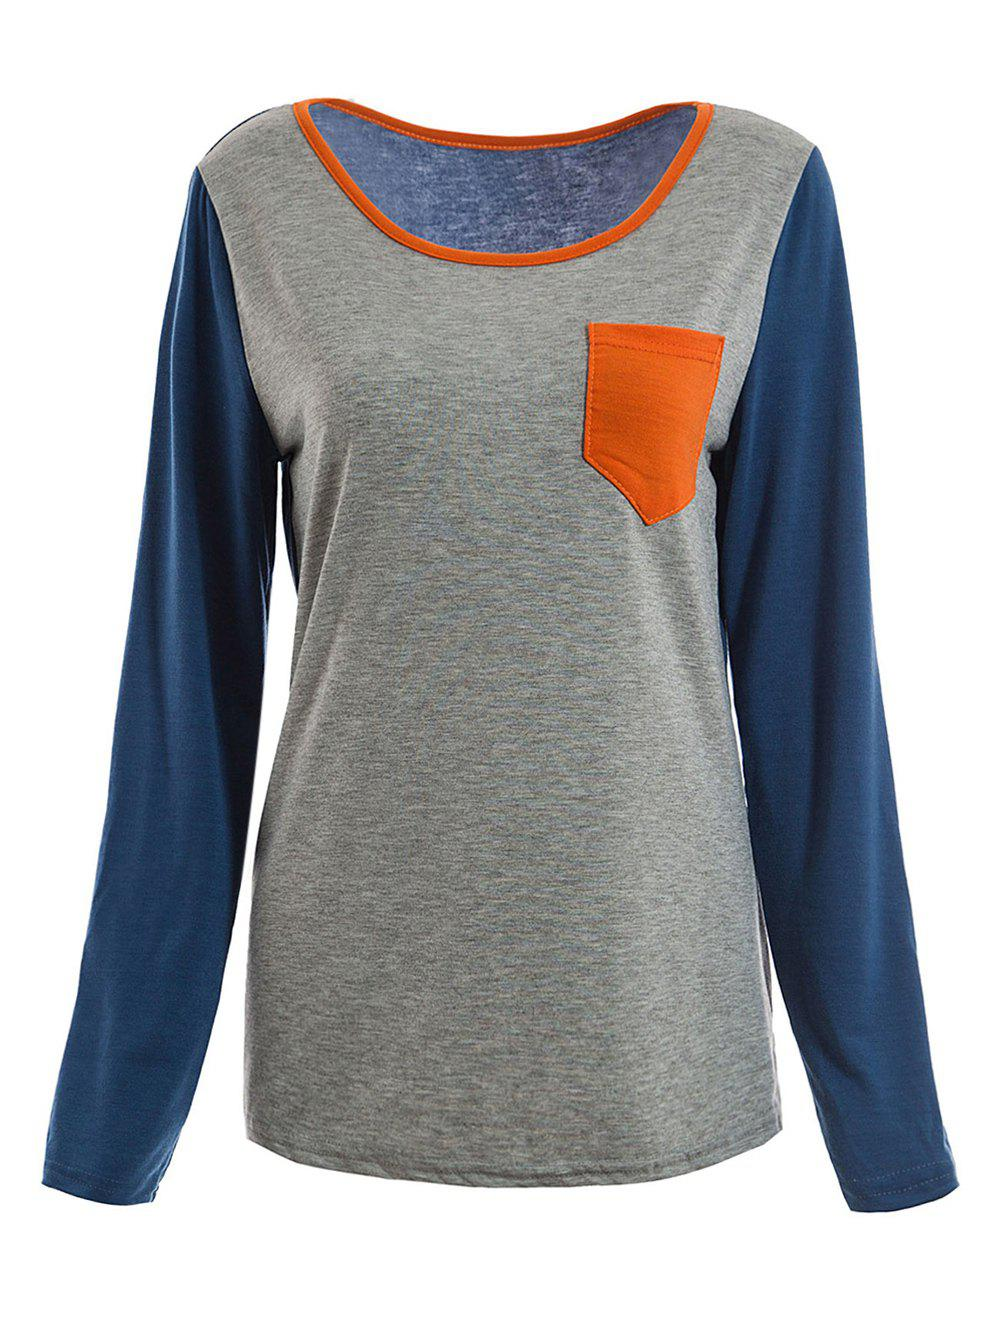 Women's Casual Colormatching Long Sleeved T-Shirt With Pocket - GRAY M